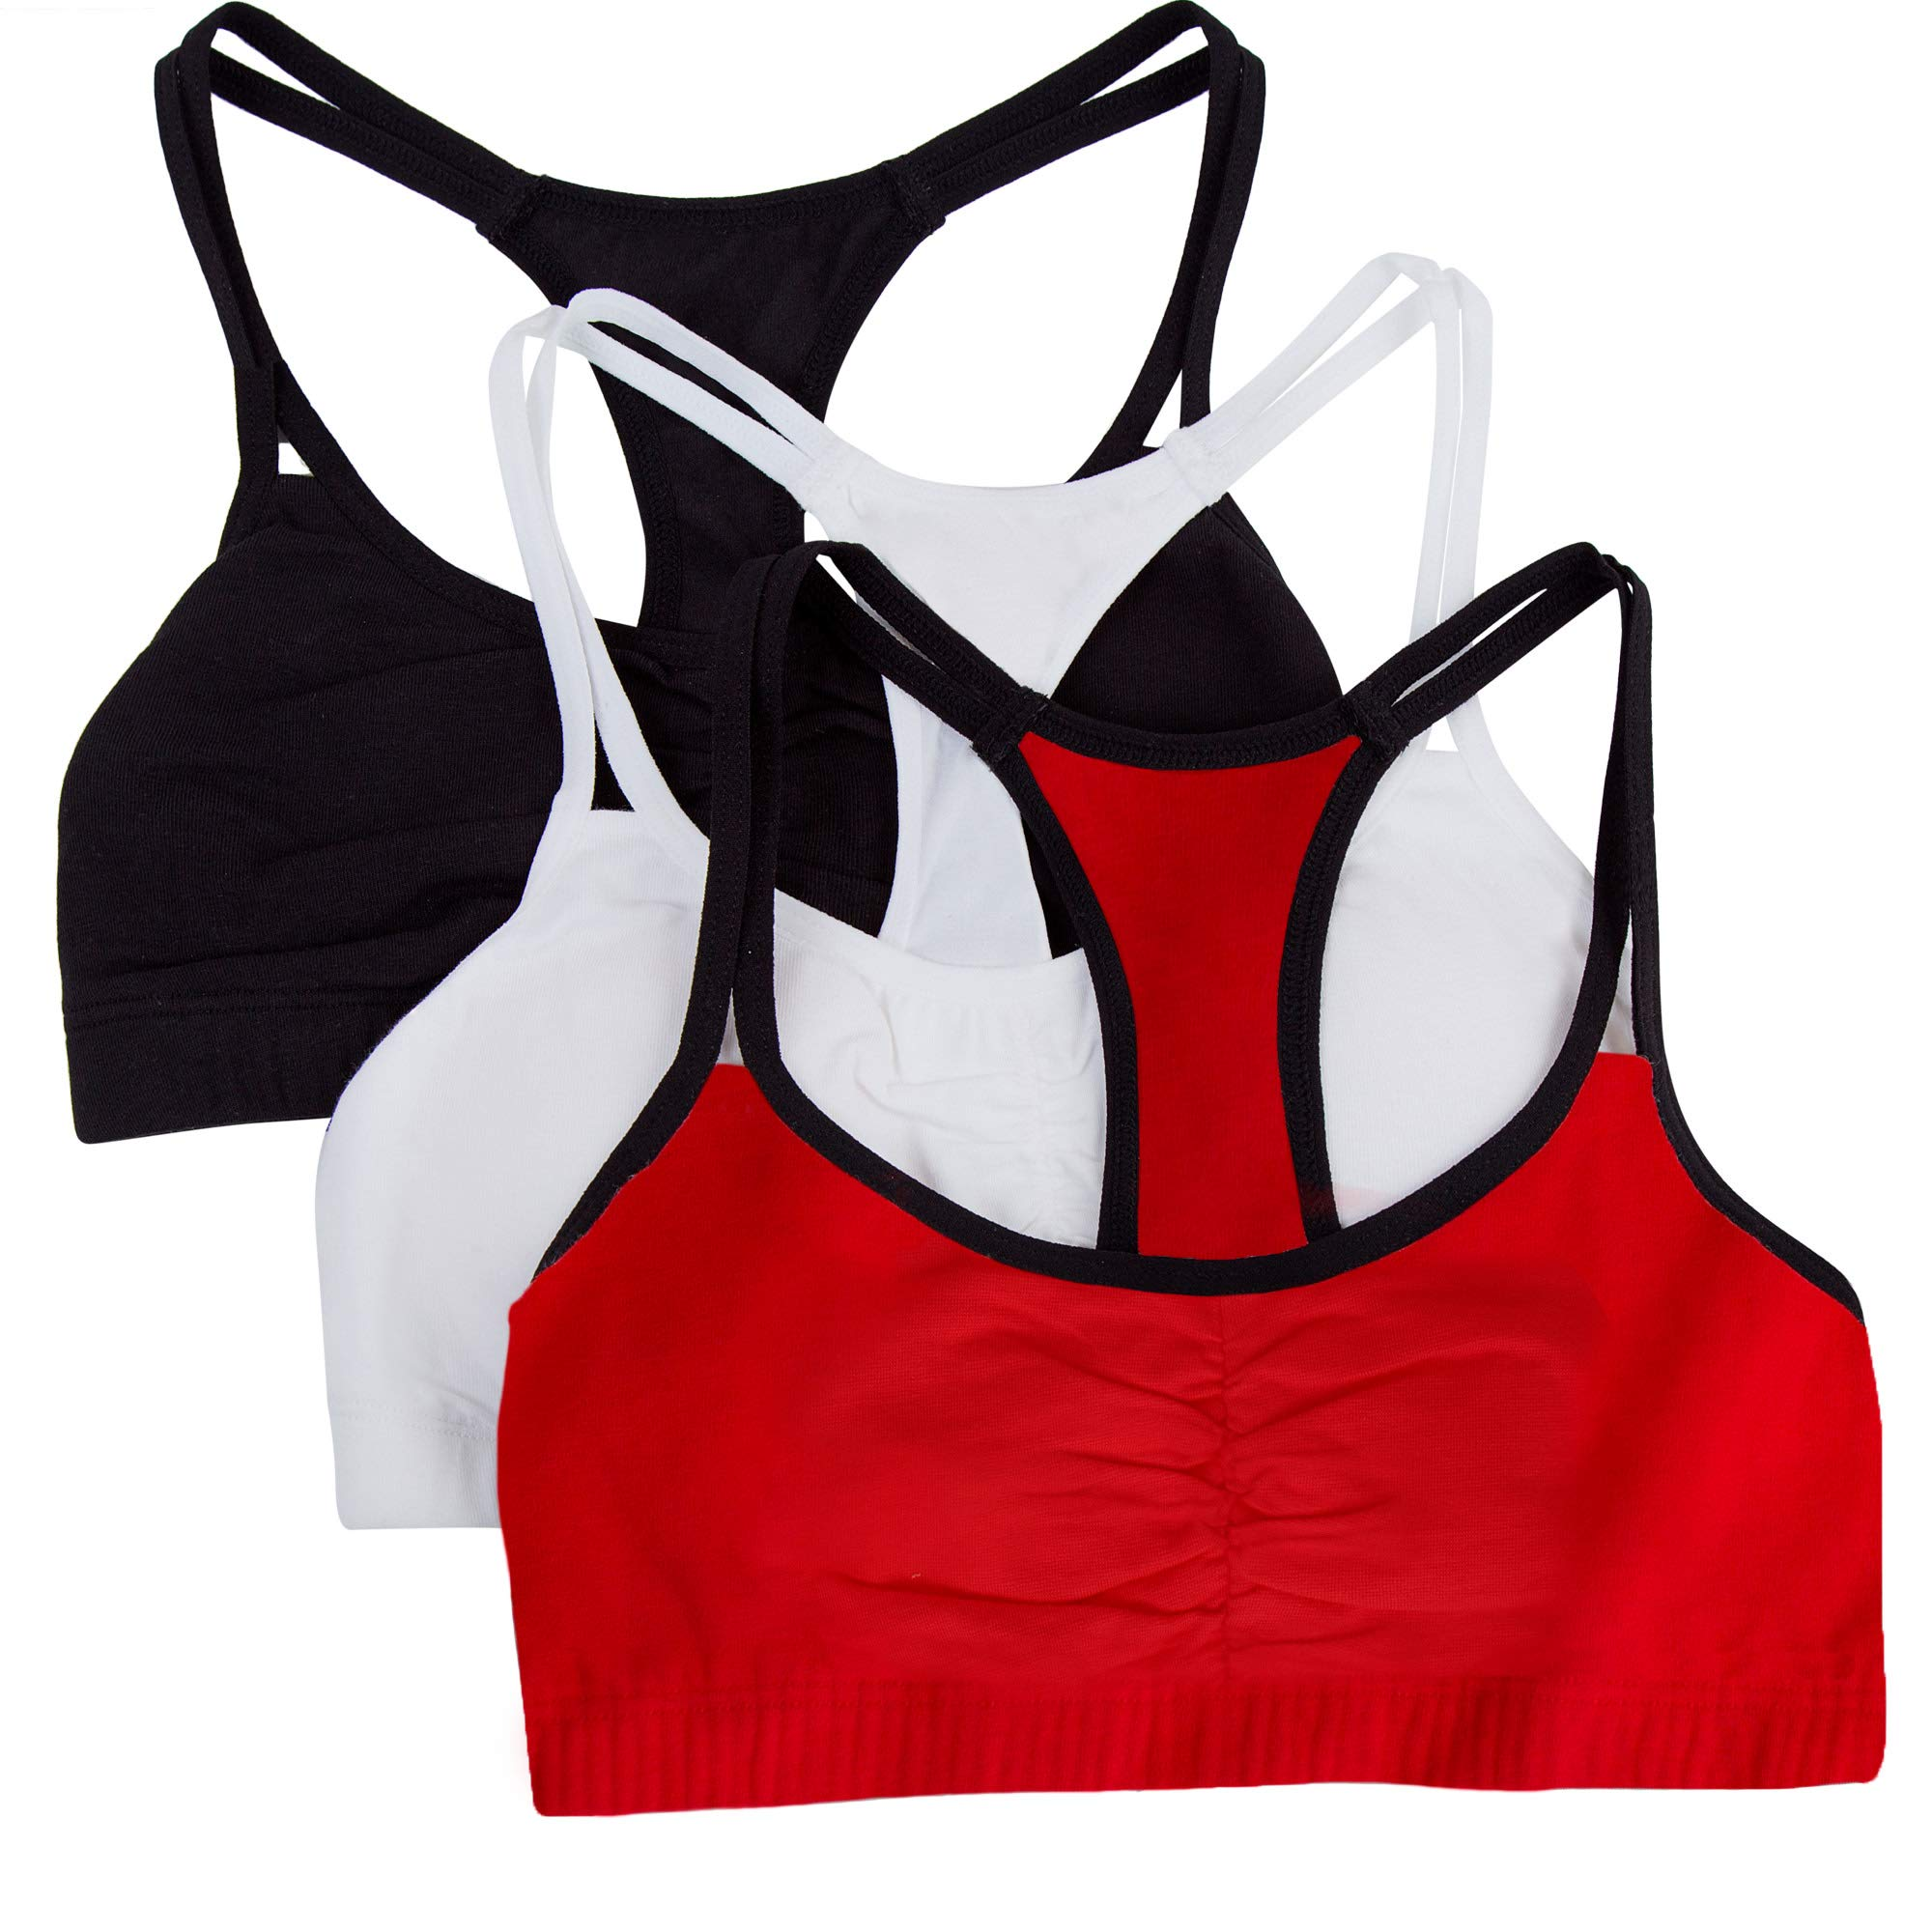 Fruit of the Loom Women's Cotton Pullover Sport Bra (Pack of 3) Bra, Red Hot with Black/White/Black, 32 by Fruit of the Loom